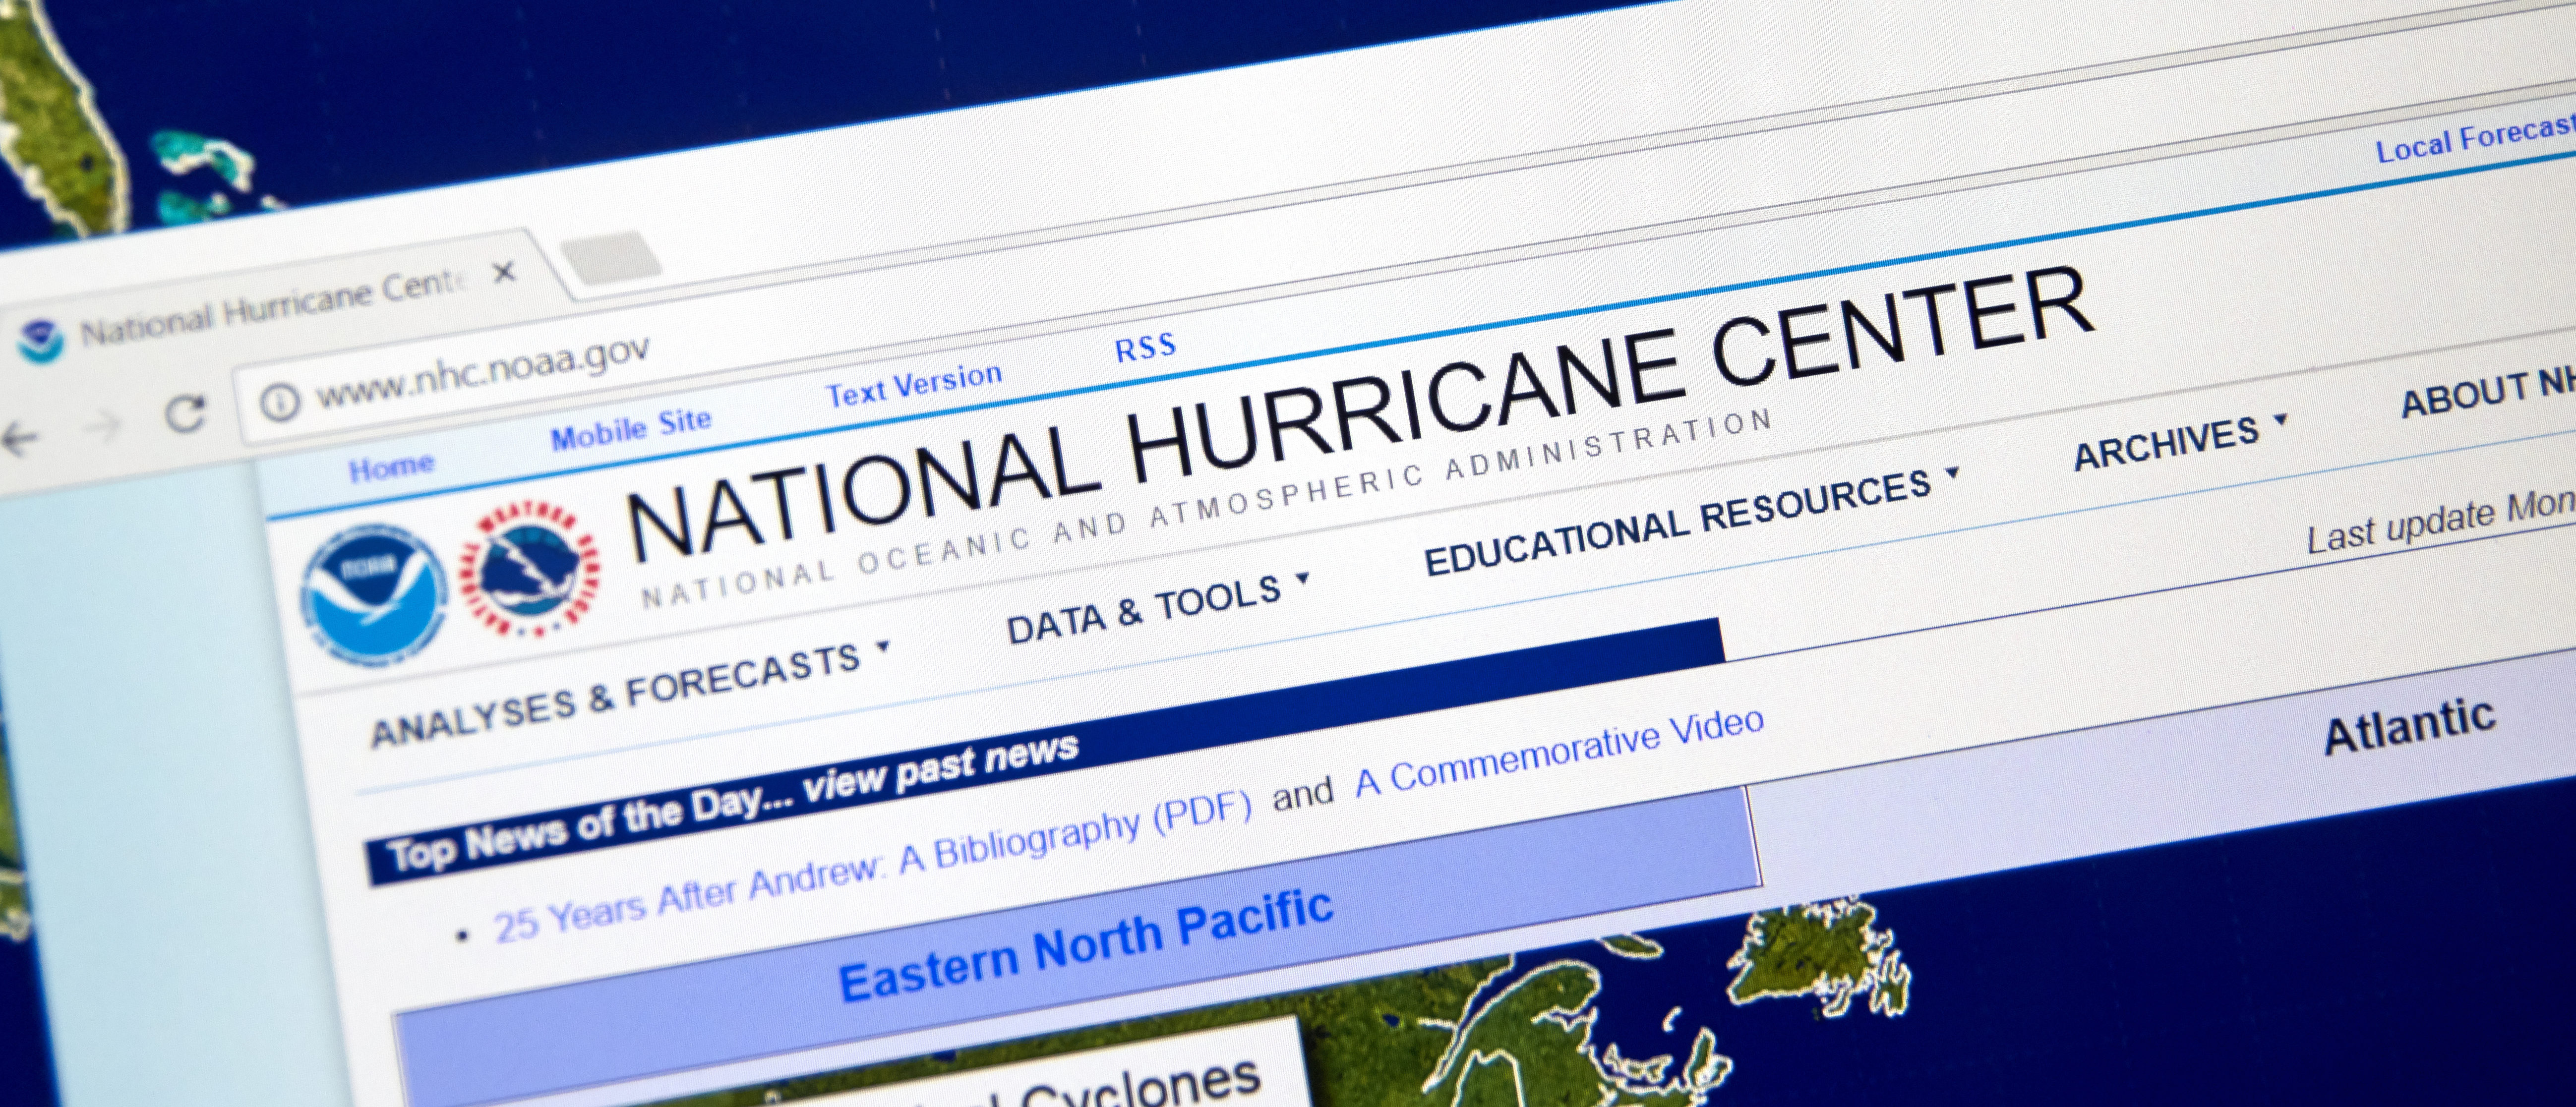 Web page of National Hurricane Center. The National Hurricane Center is co-located with the National Weather Service Miami-South Florida Weather Forecast Office. (Source: dennizn/Shutterstock)